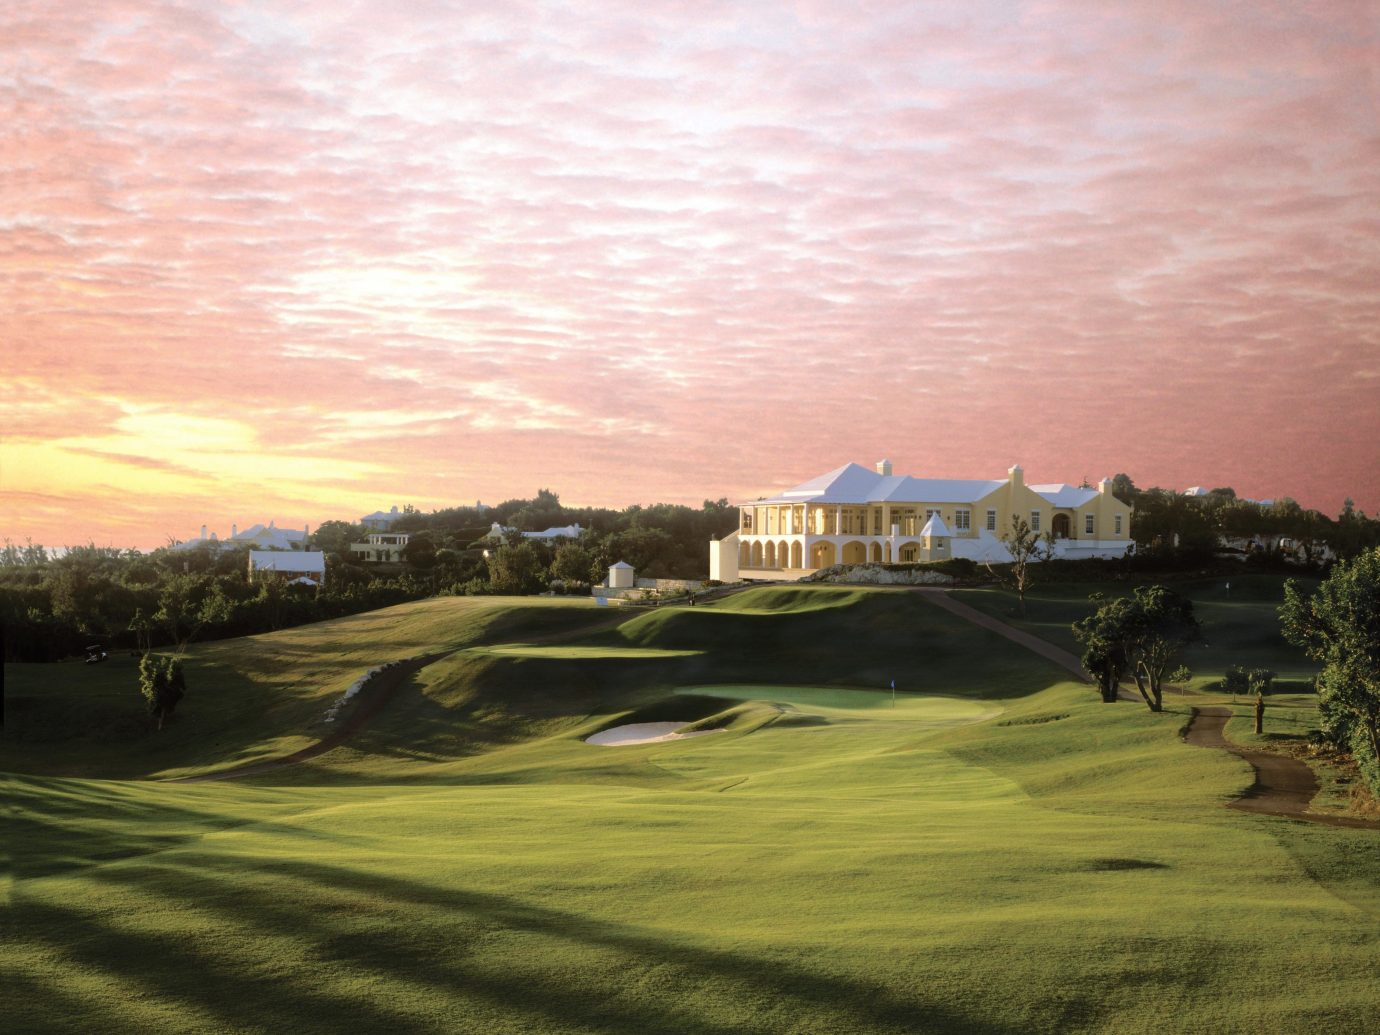 Beachfront Elegant Exterior Golf Grounds Hotels Island Scenic views Sport Sunset Tropical Waterfront outdoor sky grass structure sport venue golf course cloud field golf club Nature sports lawn dusk day